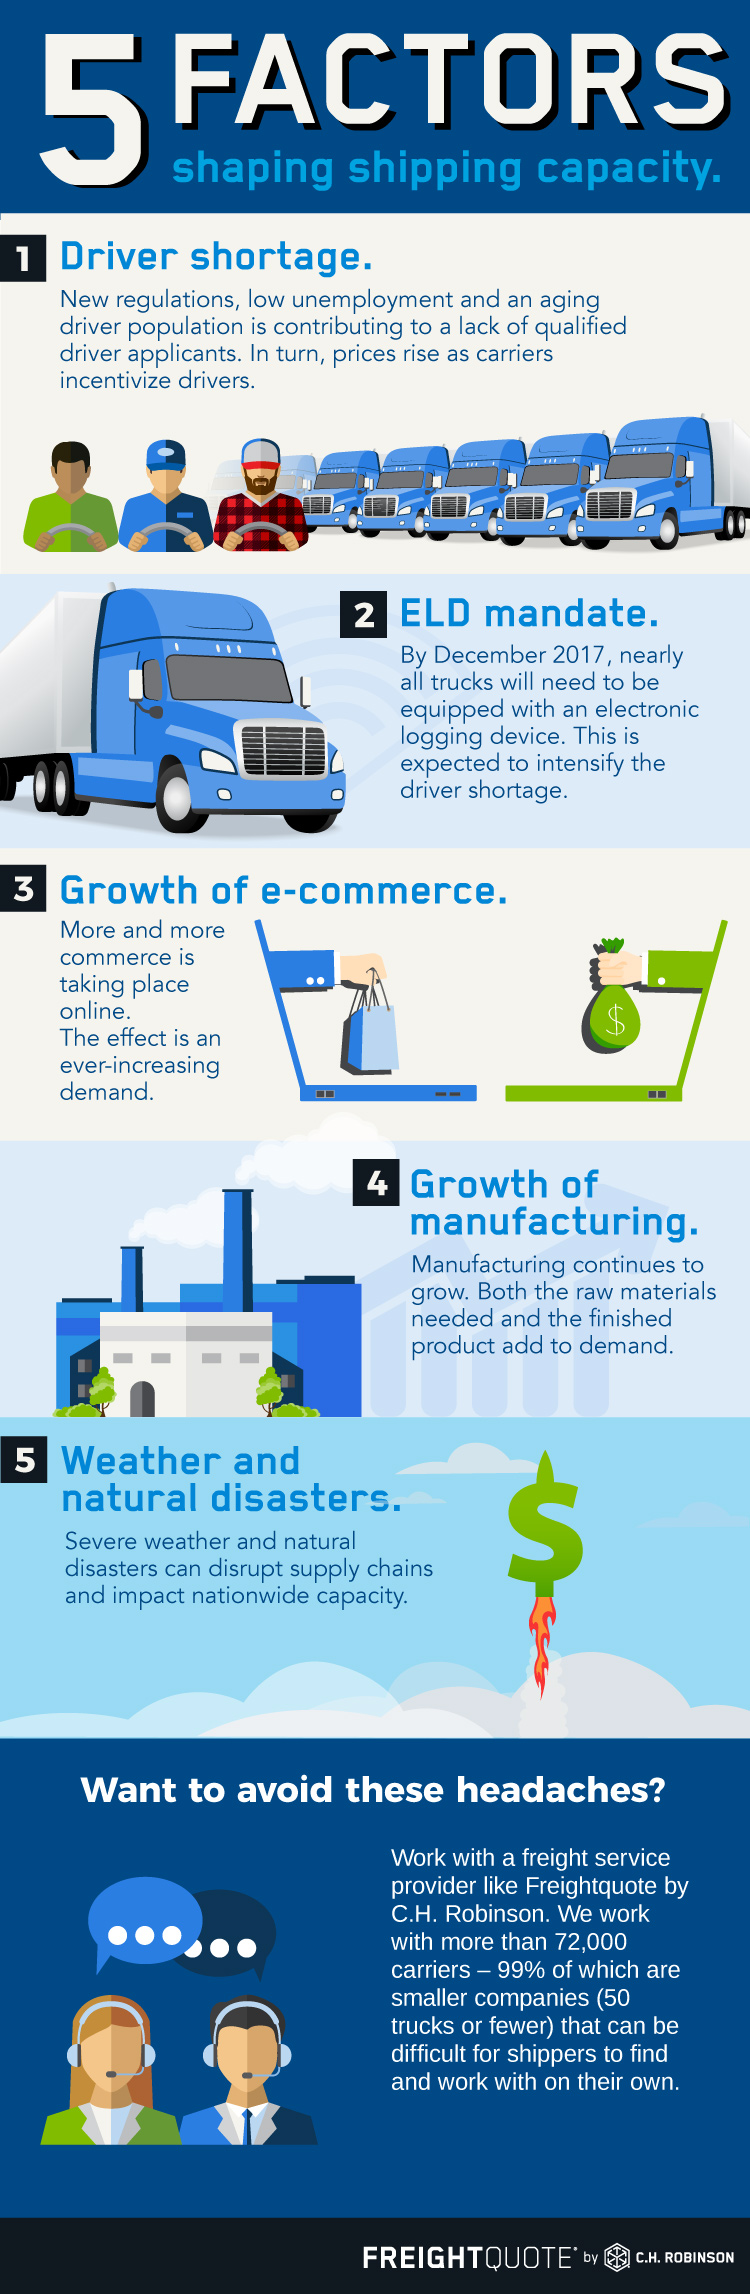 Freight Quote 5 Factors Shaping Freight Shipping Capacity Infographic  Freightquote